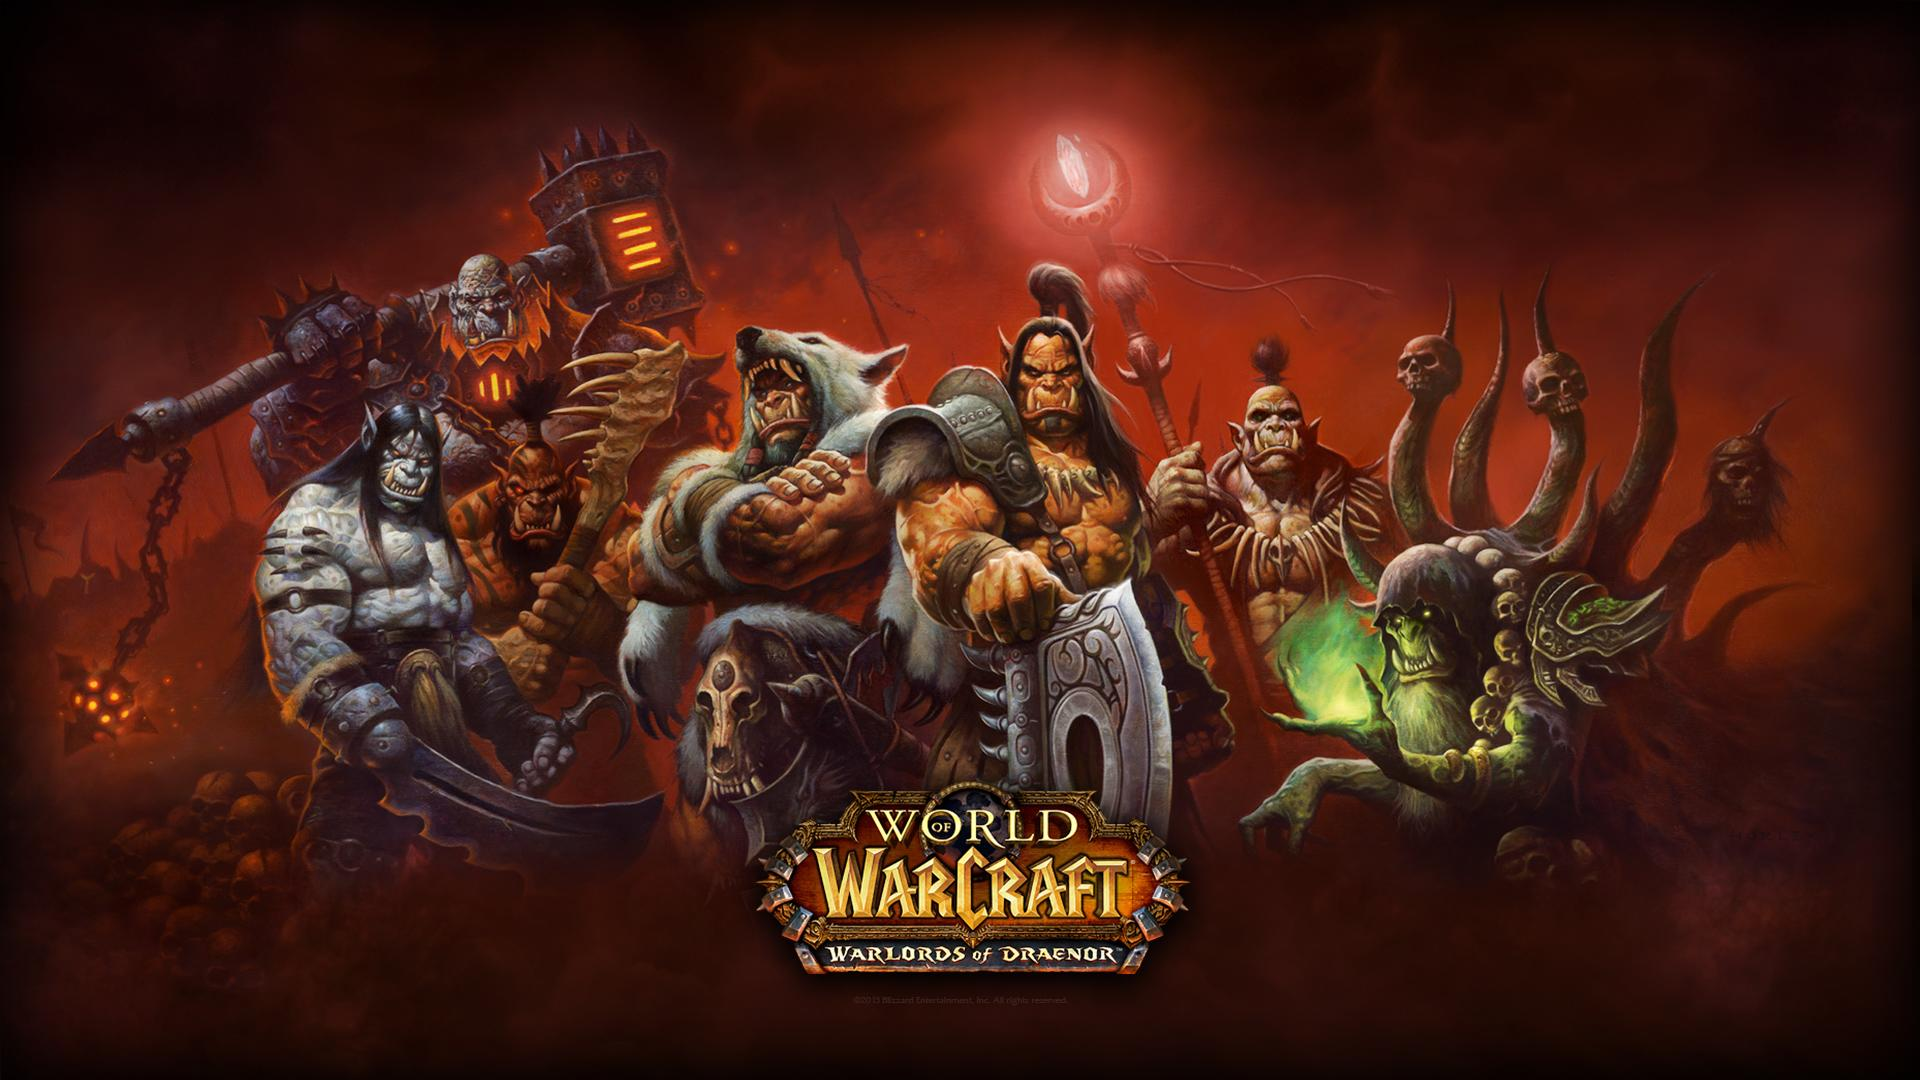 World of Warcraft Loses Nearly 3 Million Subscribers in Three Months